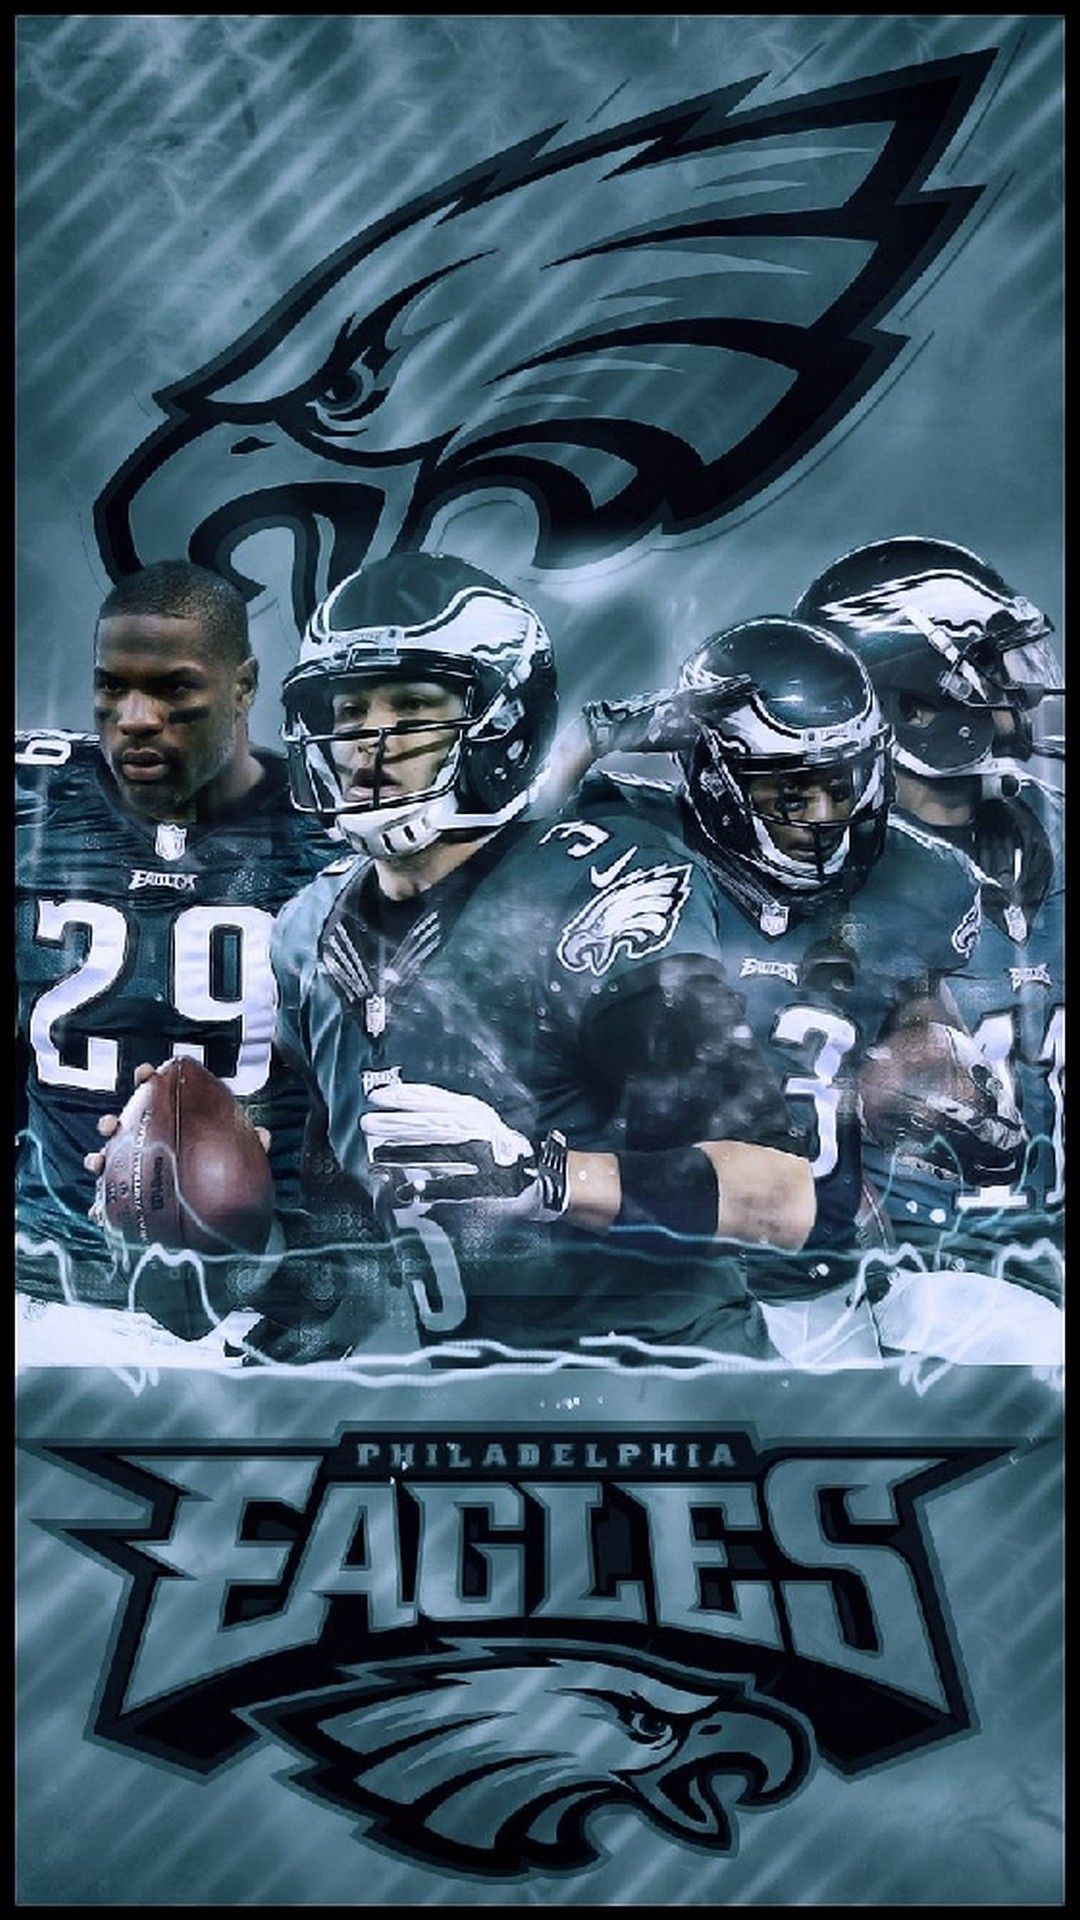 Nfl Wallpapers Philadelphia Eagles Nfl Football Wallpaper Eagles